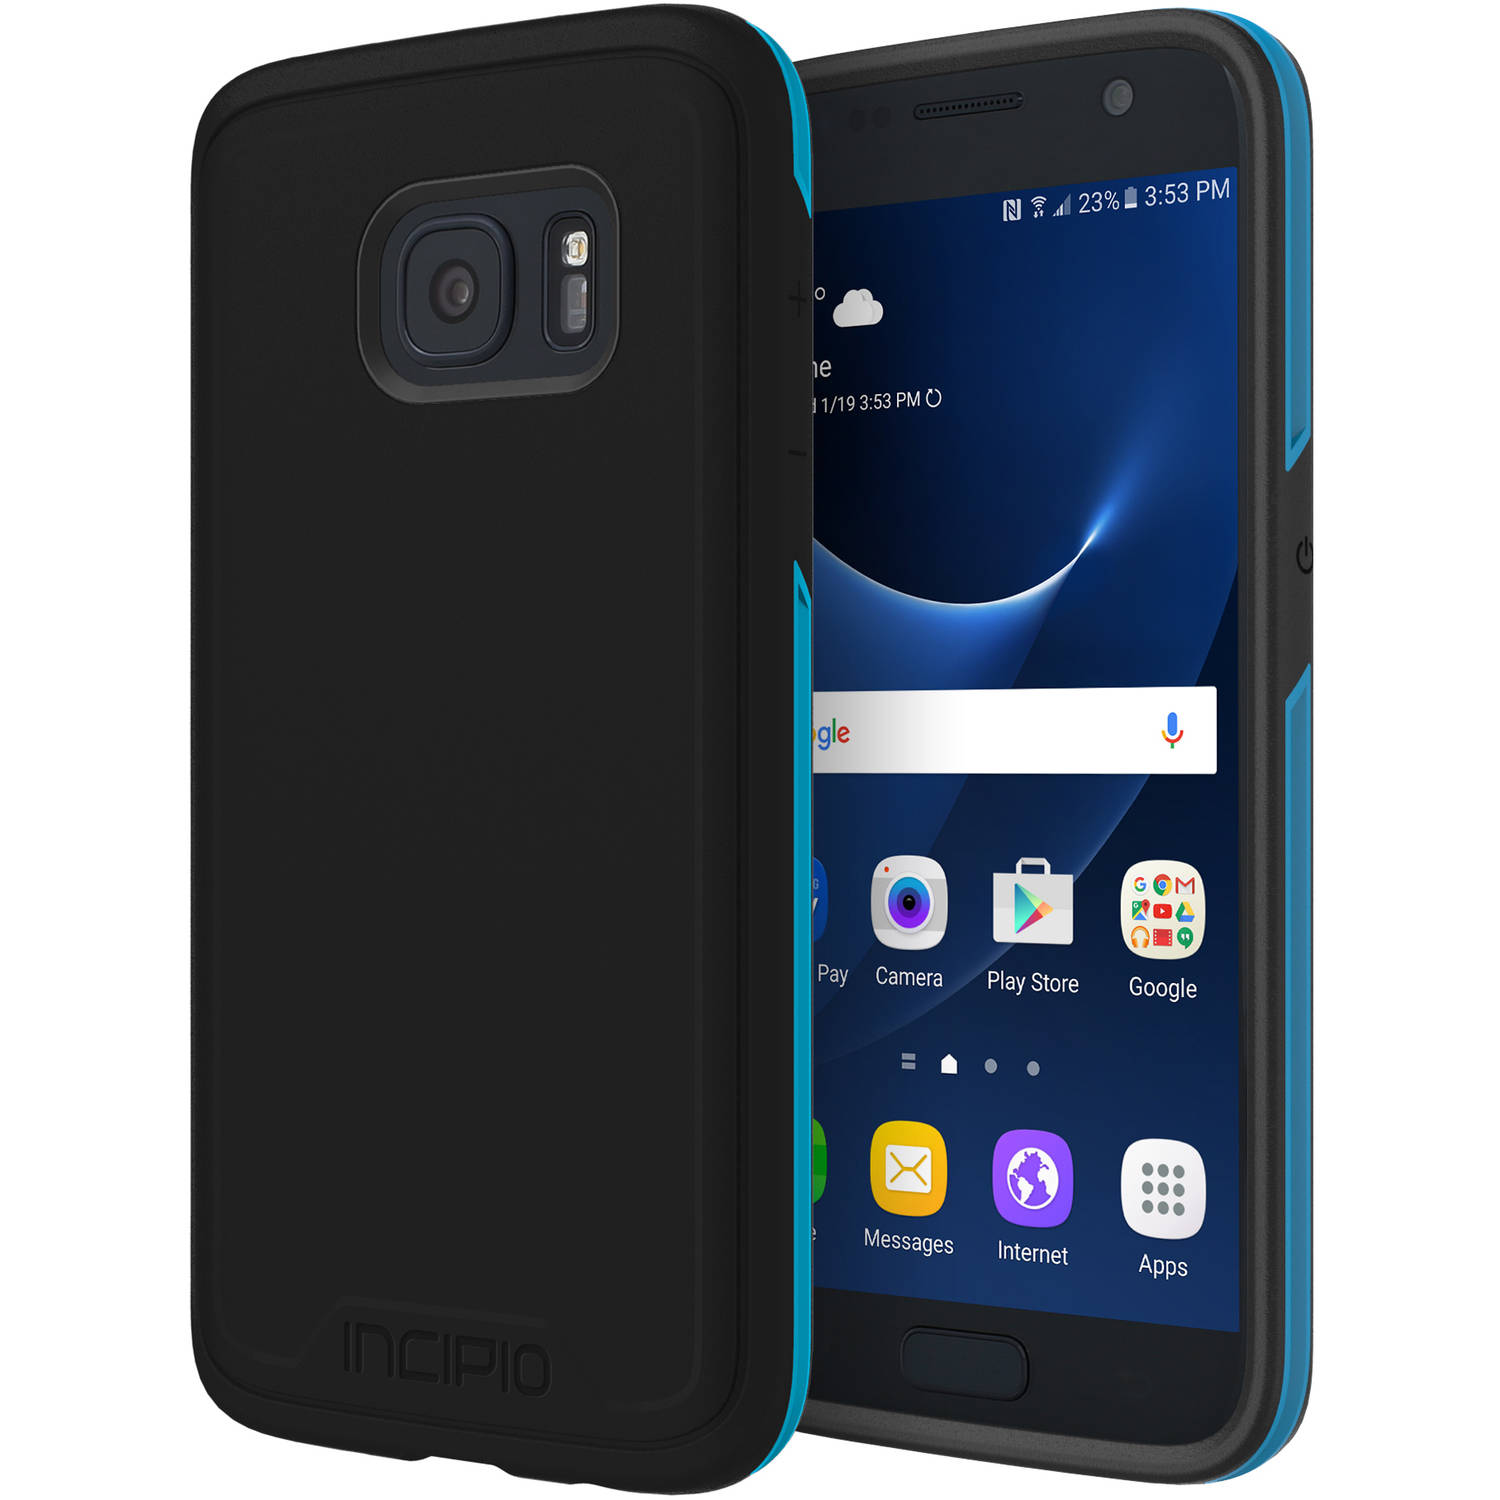 Incipio Performance Series Level 3 for Samsung Galaxy S7